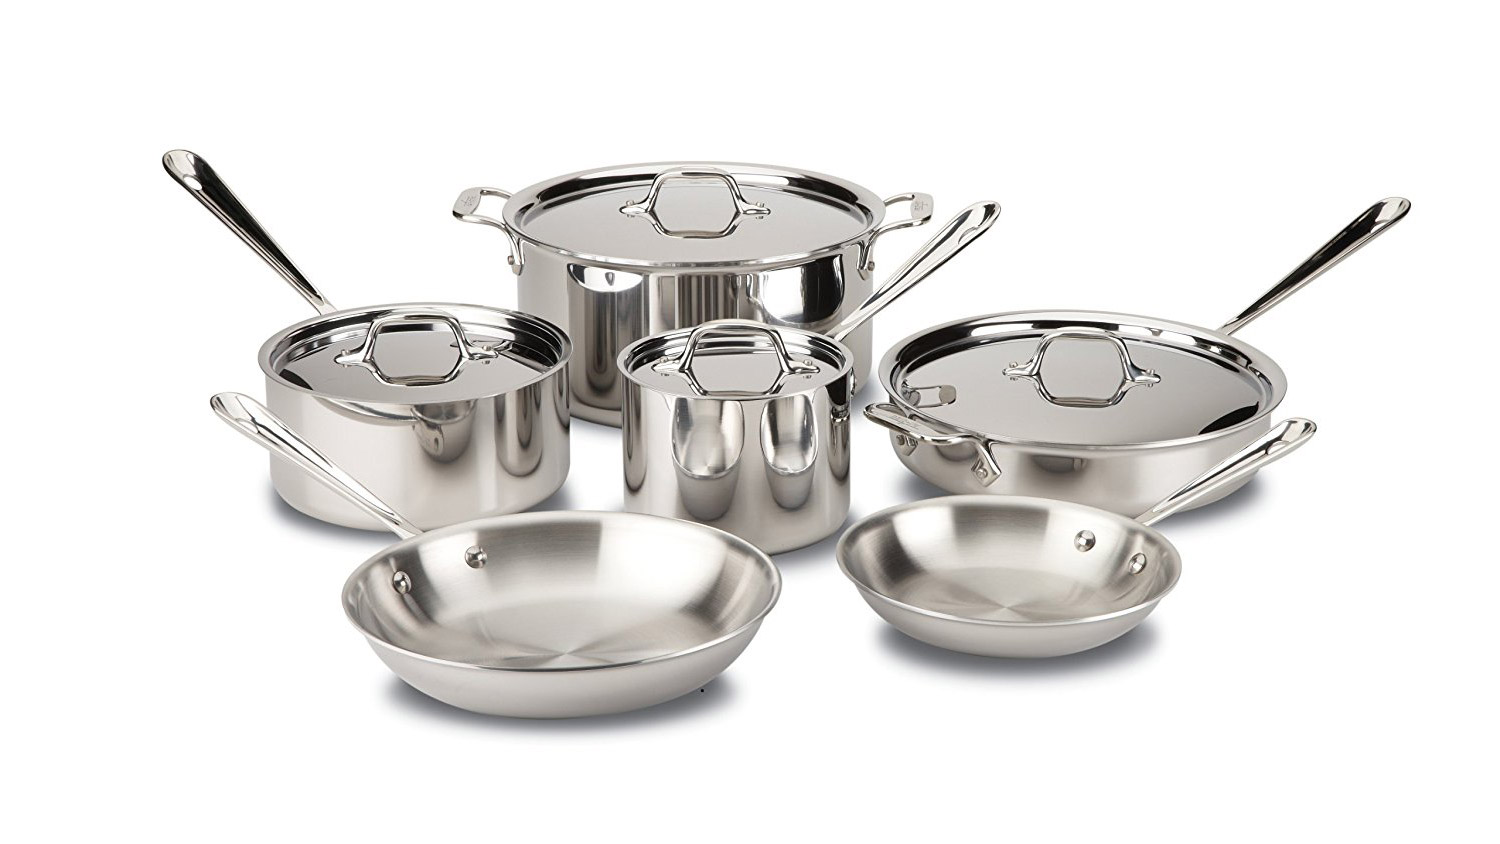 25 Made-In-USA Kitchenware Items for Your Wedding Registry | Food & Wine